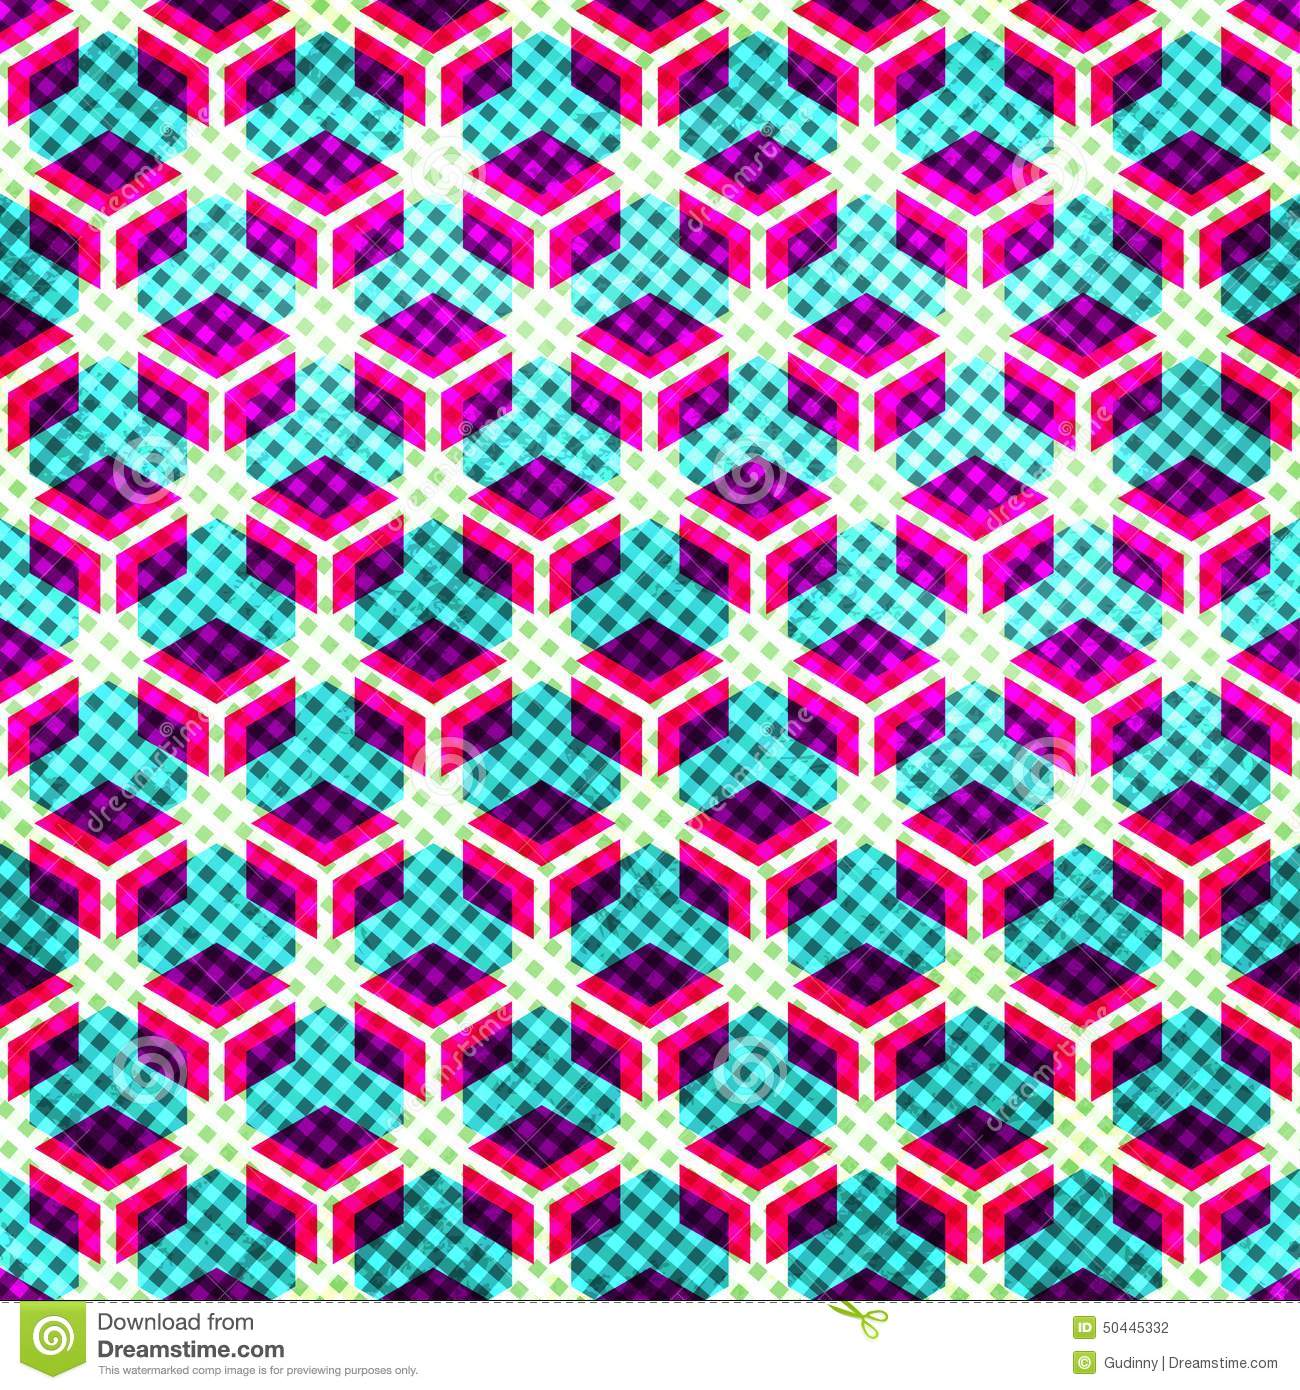 Neon Grid Seamless Pattern With Grunge Effect Stock Vector